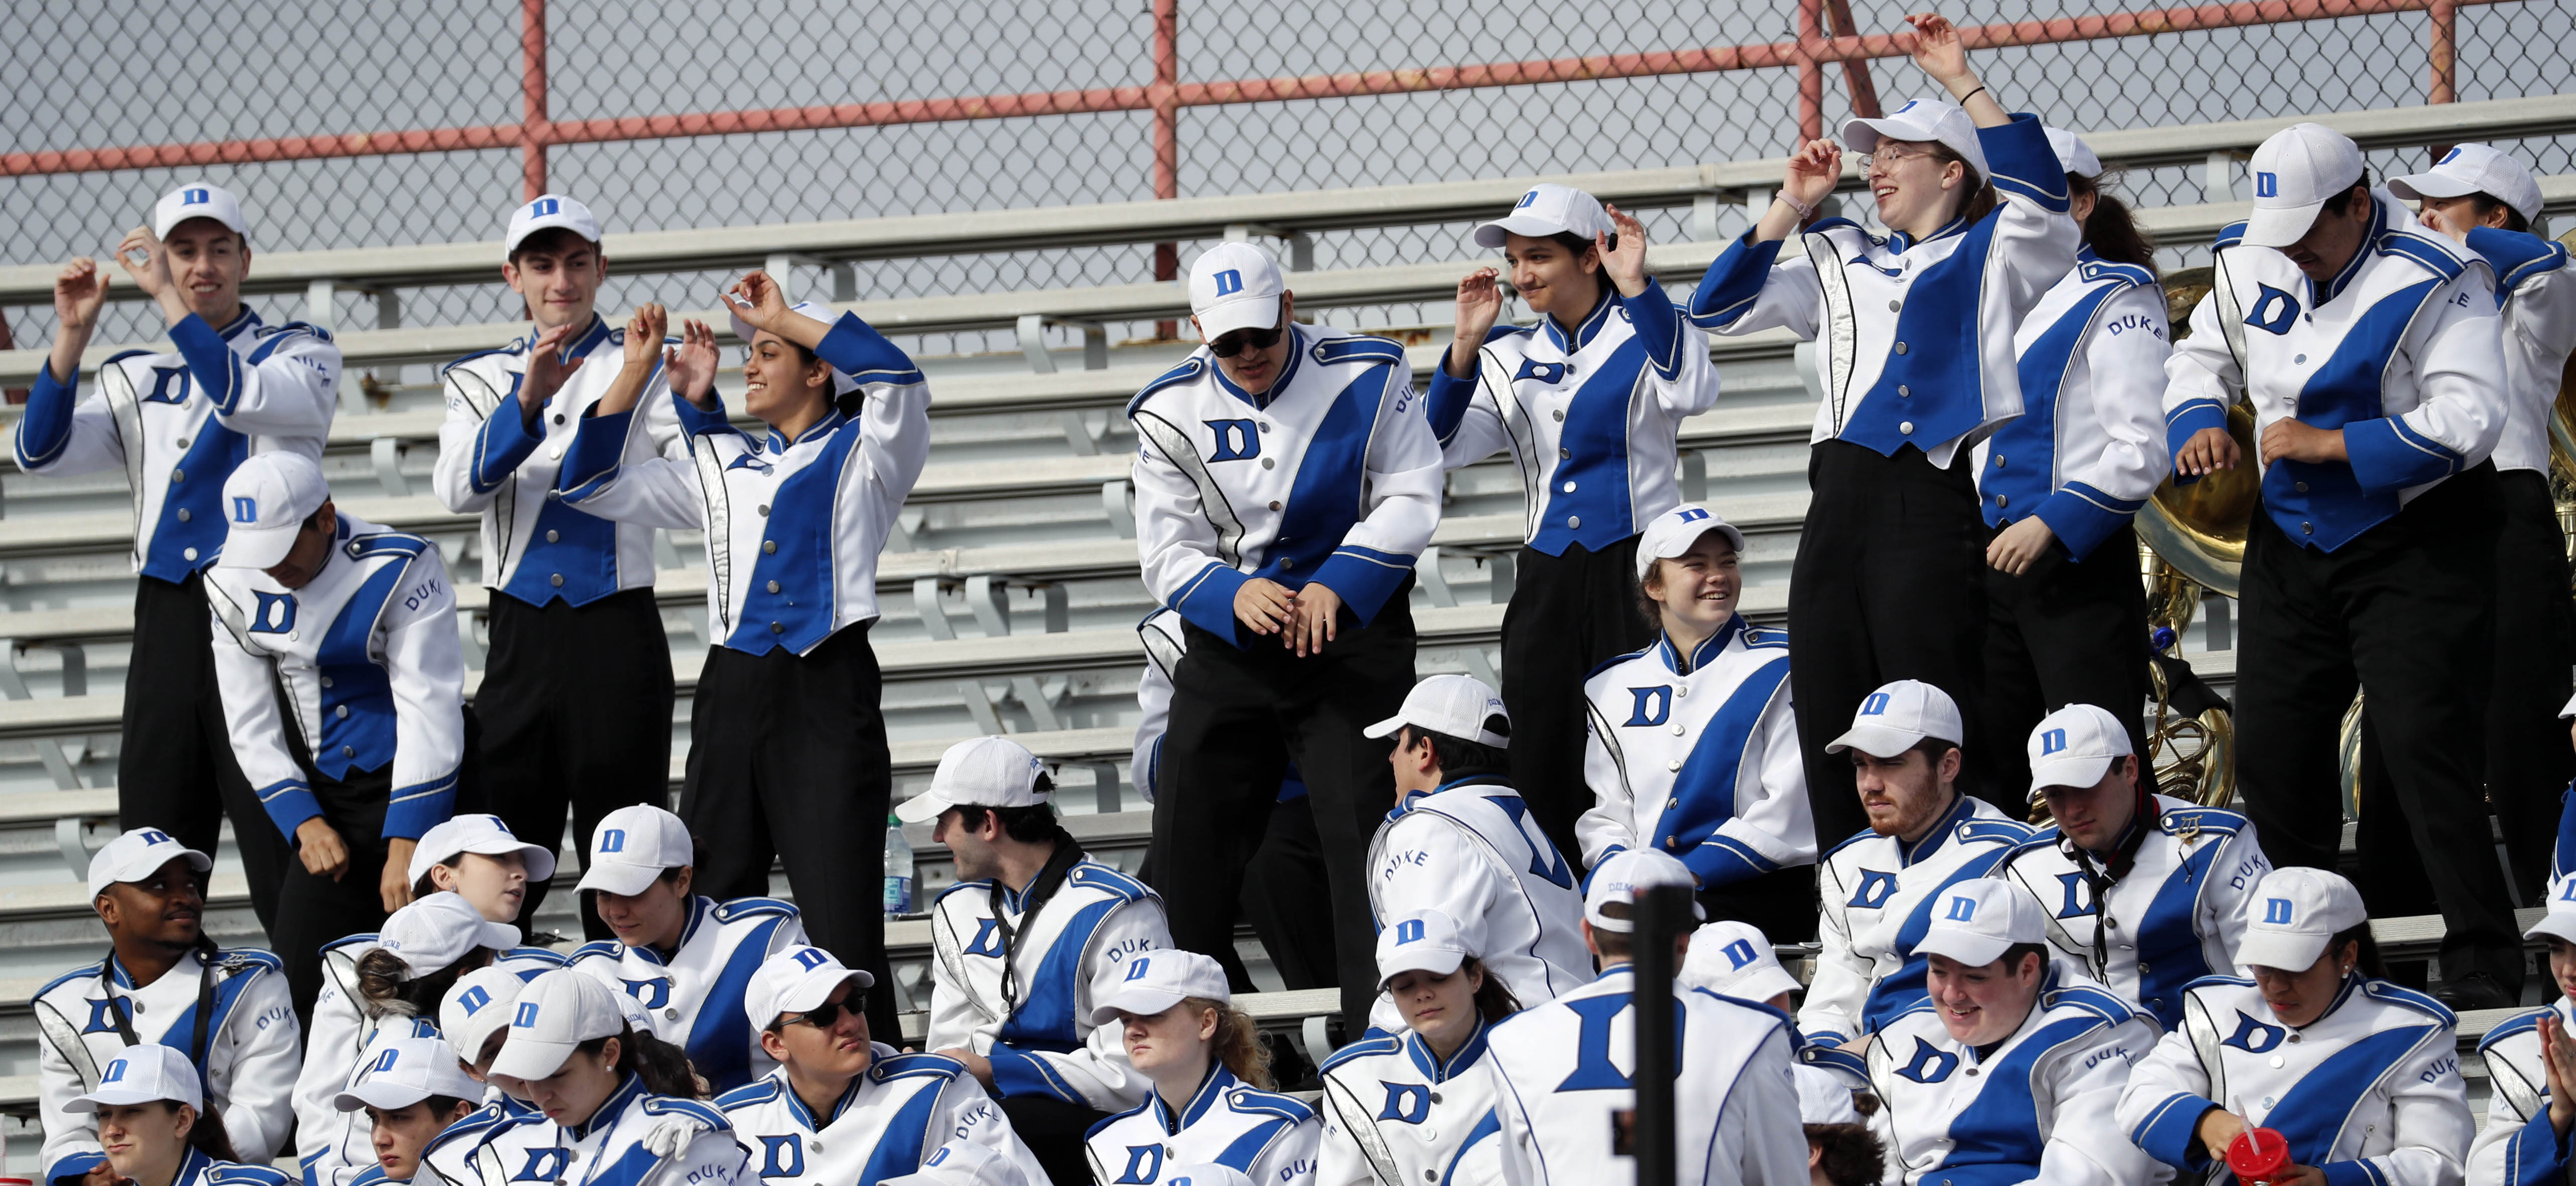 """<div class=""""meta image-caption""""><div class=""""origin-logo origin-image ap""""><span>AP</span></div><span class=""""caption-text"""">Duke band members dance to stadium music prior to the start of the Independence Bowl. (Rogelio V. Solis)</span></div>"""